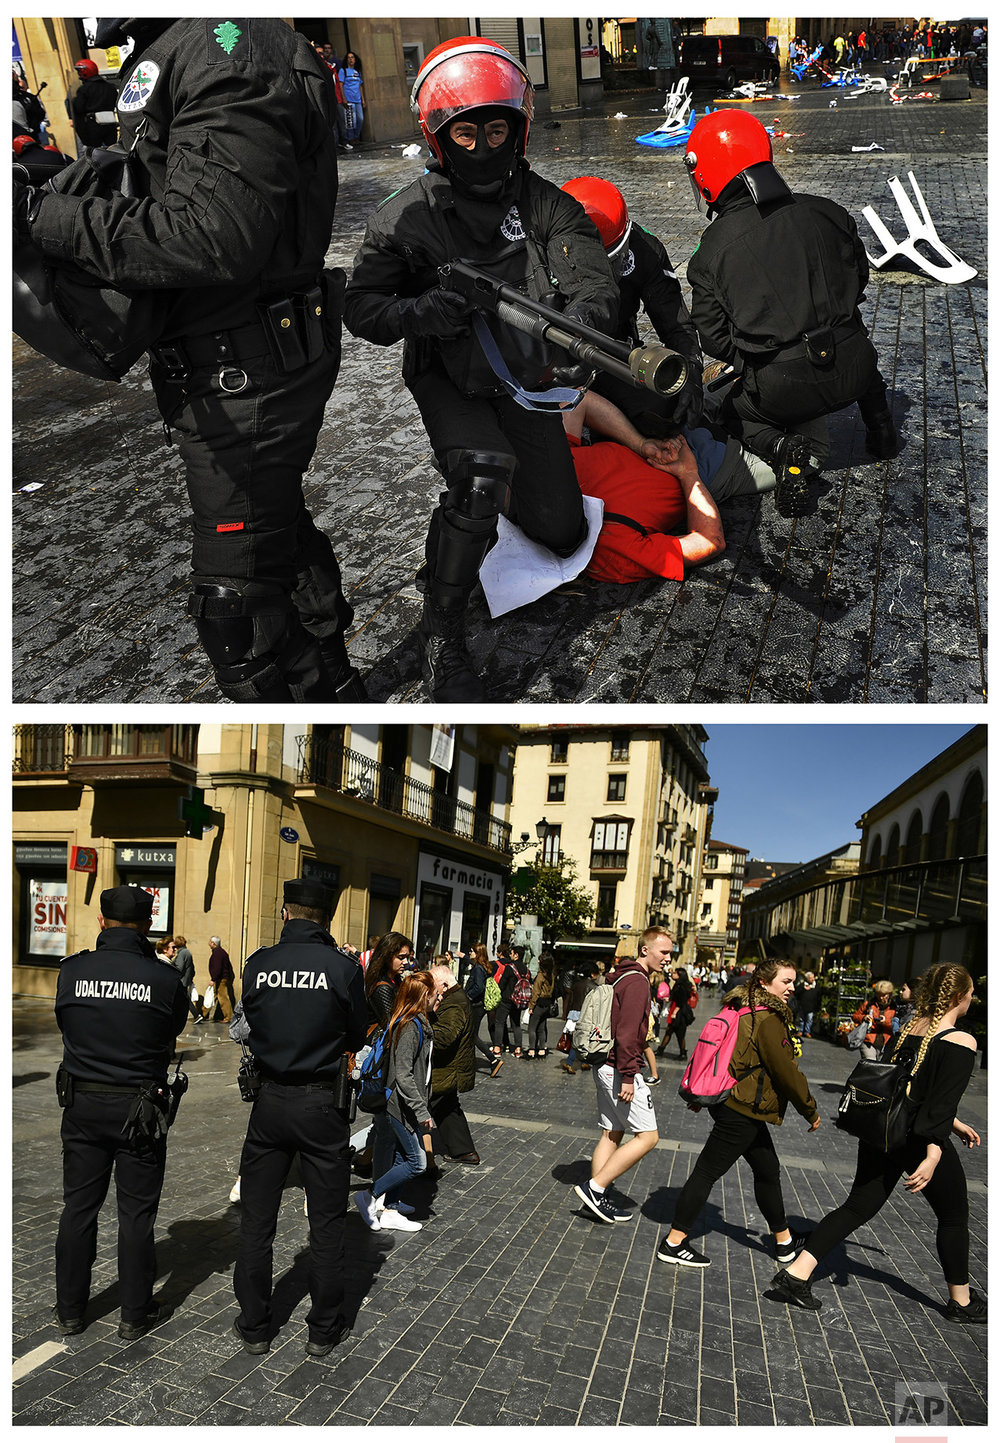 In this two photo combo, riot police detain an unidentified pro-independence Basque demonstrator, while dispersing an illegal street protest by several thousand supporters of prisoners of the Basque armed group ETA in San Sebastian, northern Spain, on Sept. 14, 2008, top, and two Basque police officers patrolling the zone as people go for a walk in the same street of the old city on April 3, 2017. (AP Photo /Alvaro Barrientos)